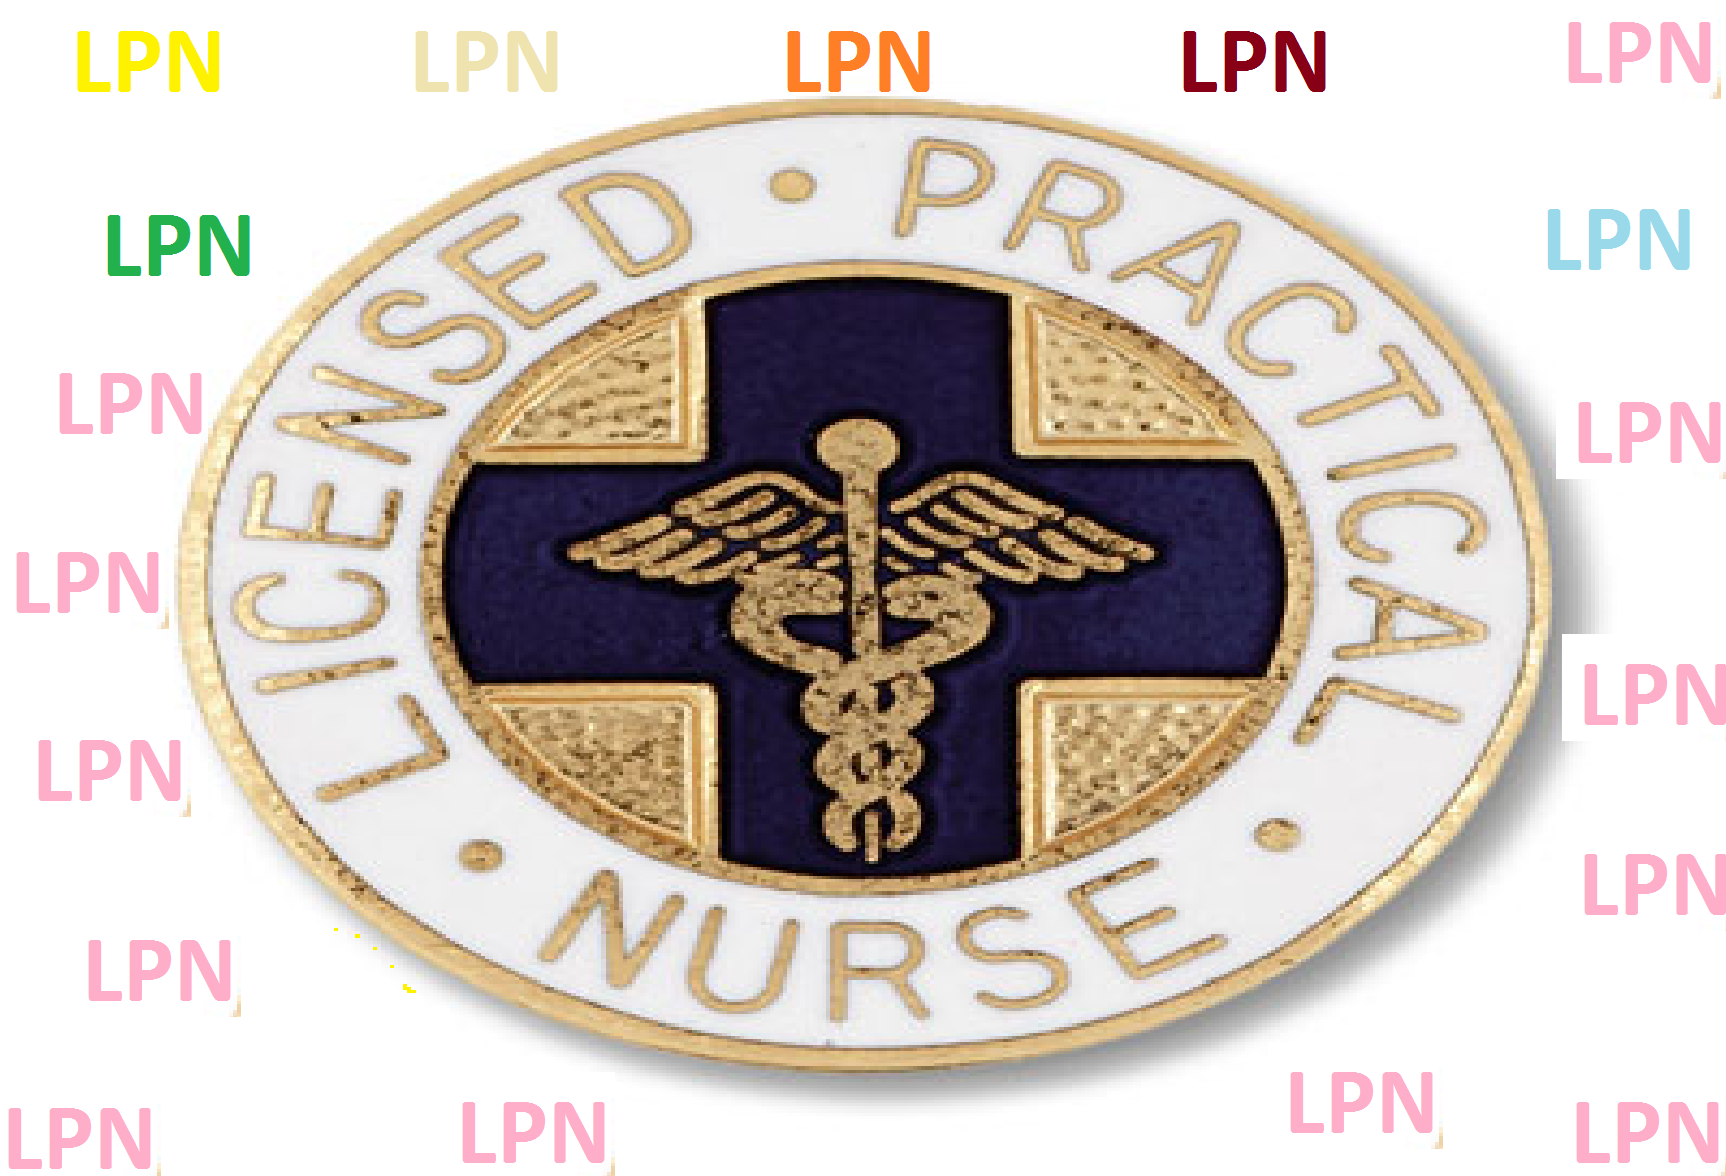 LPN nursing scholarships - Lpn PNG